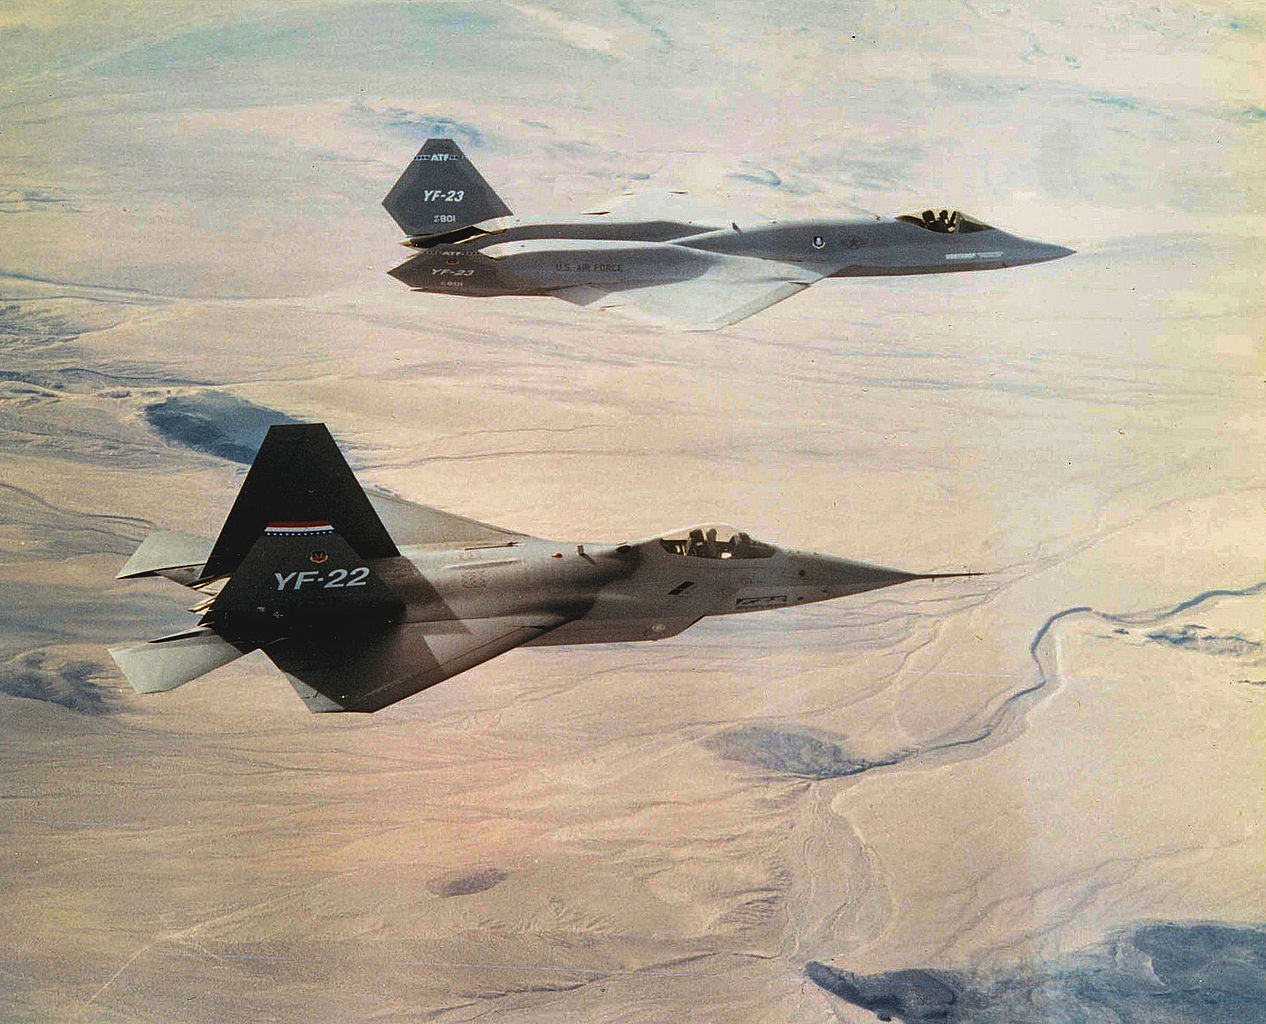 Northrop YF-23 Black Widow II en formation avec un YF-22